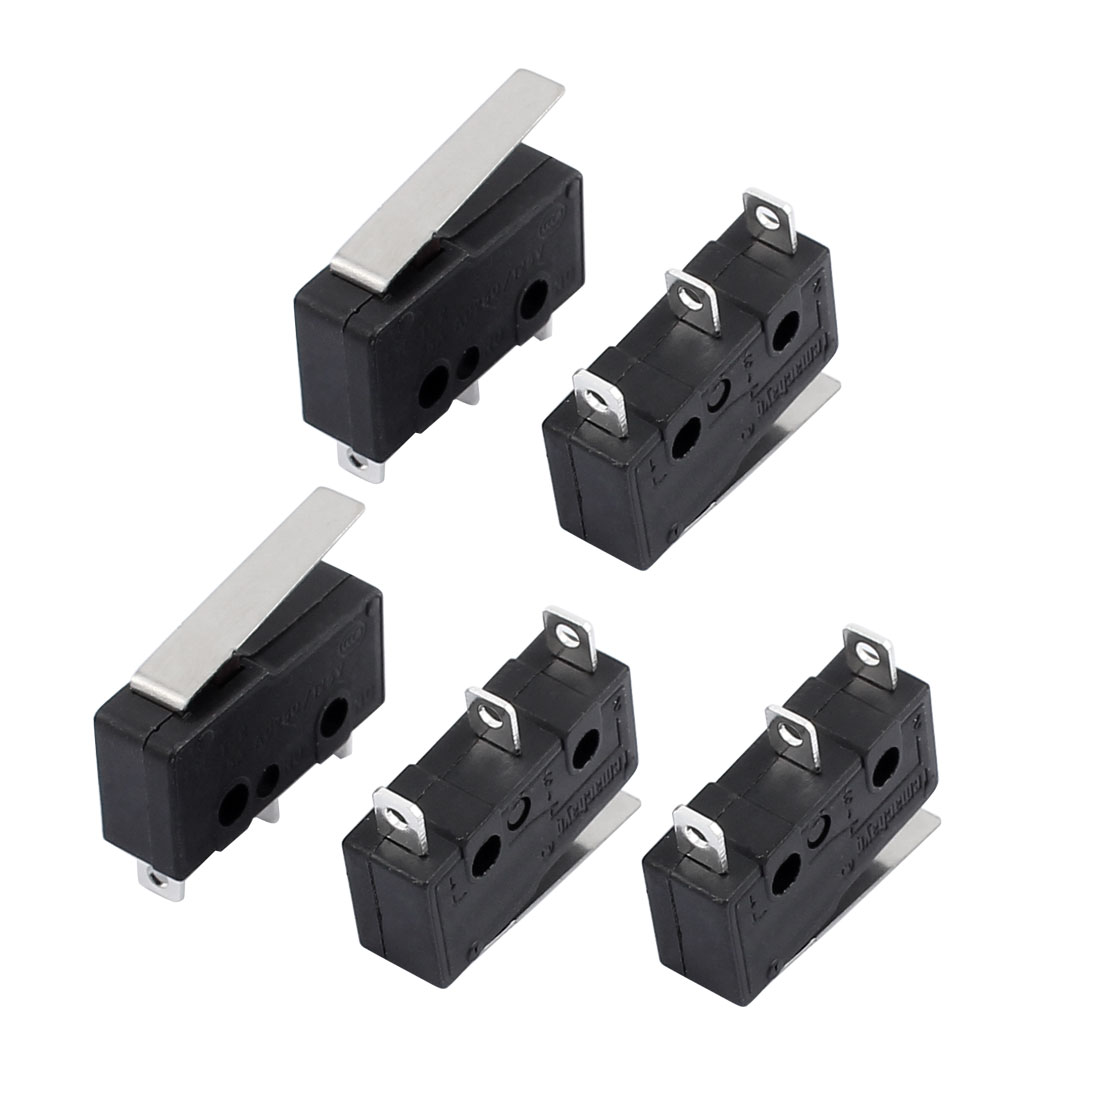 5Pcs AC250/125V 3A 3P Momentary 18mm Lever Arm Micro Switch Black KW12-1